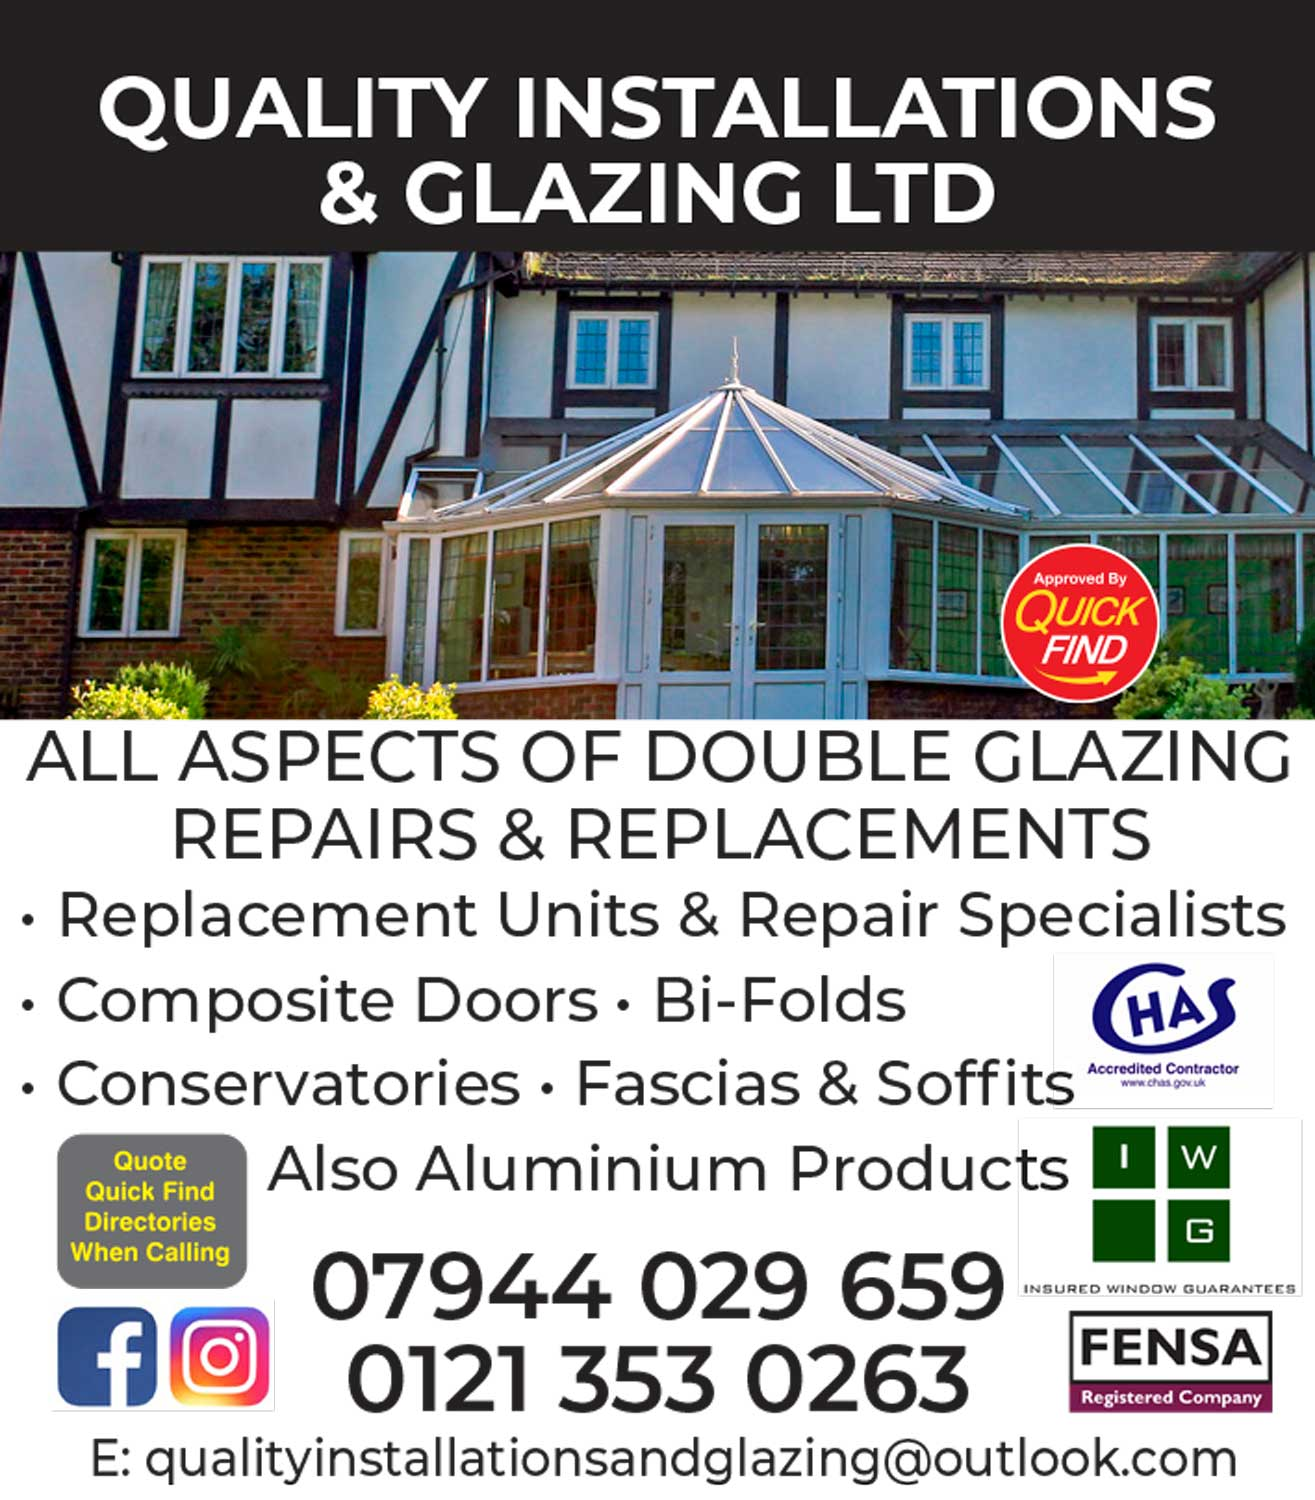 Quality Installations & Glazing Ltd